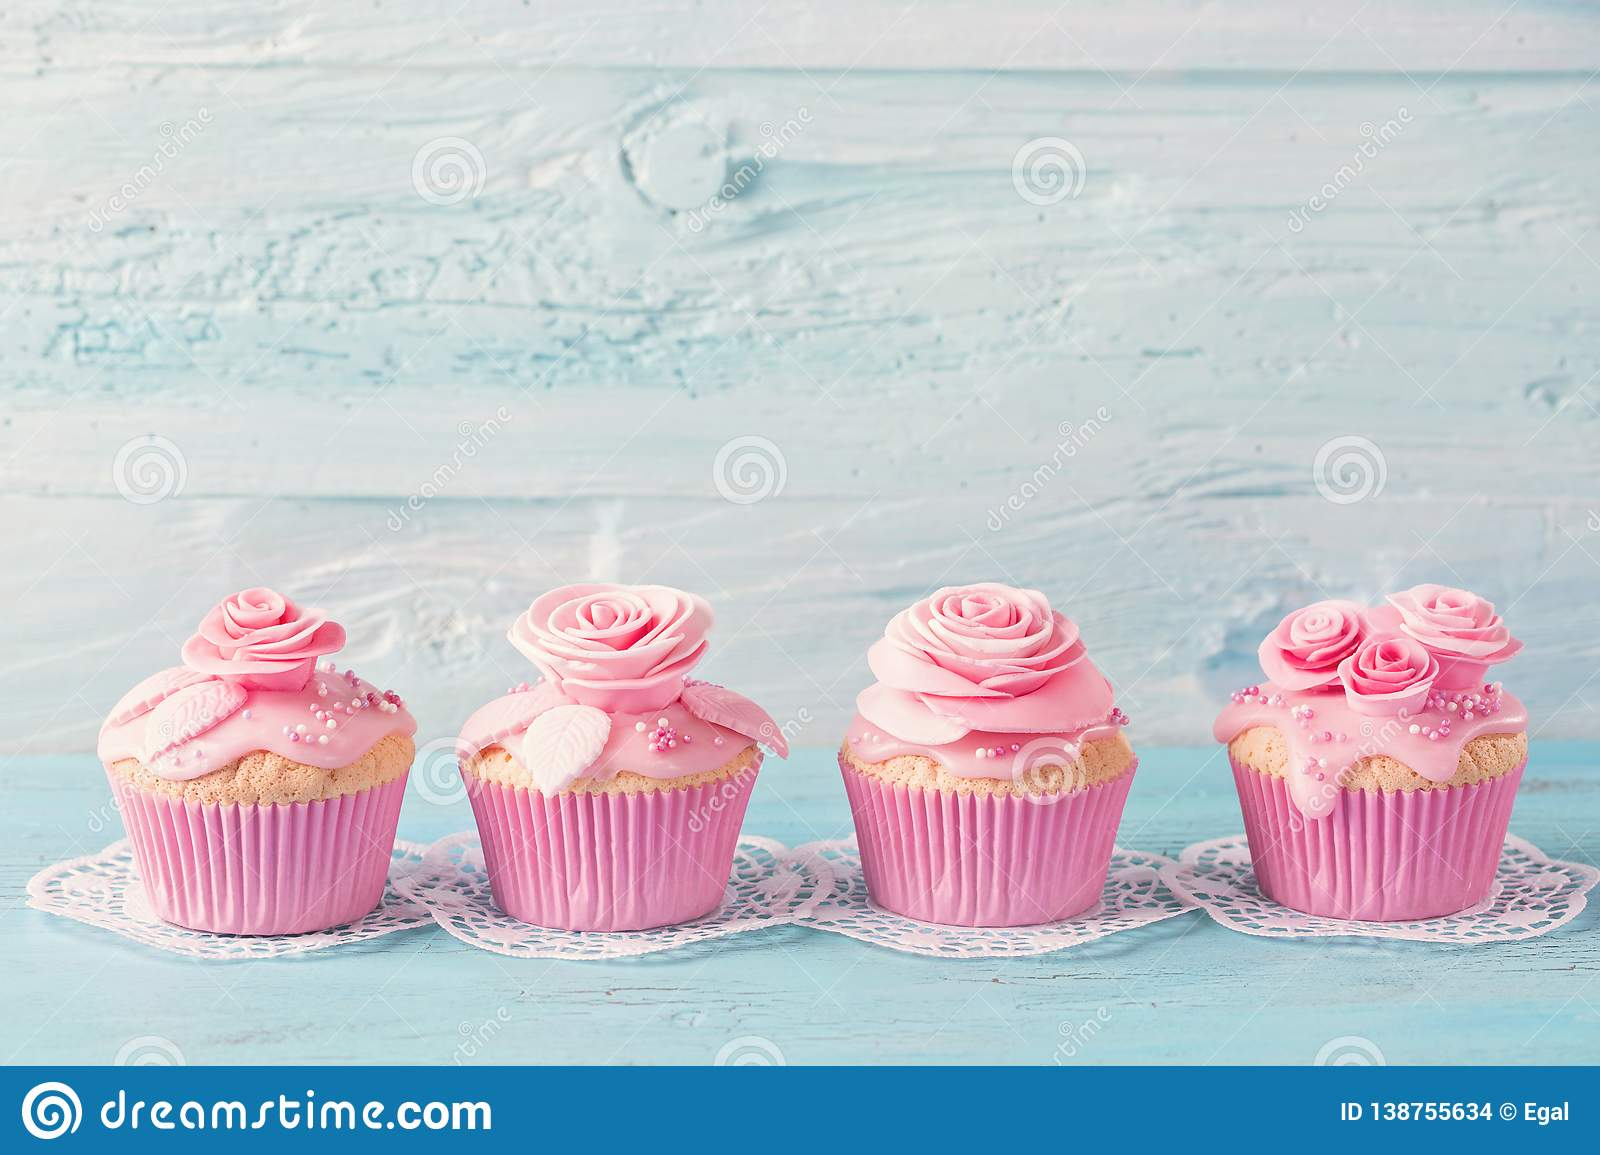 Pink cup cakes